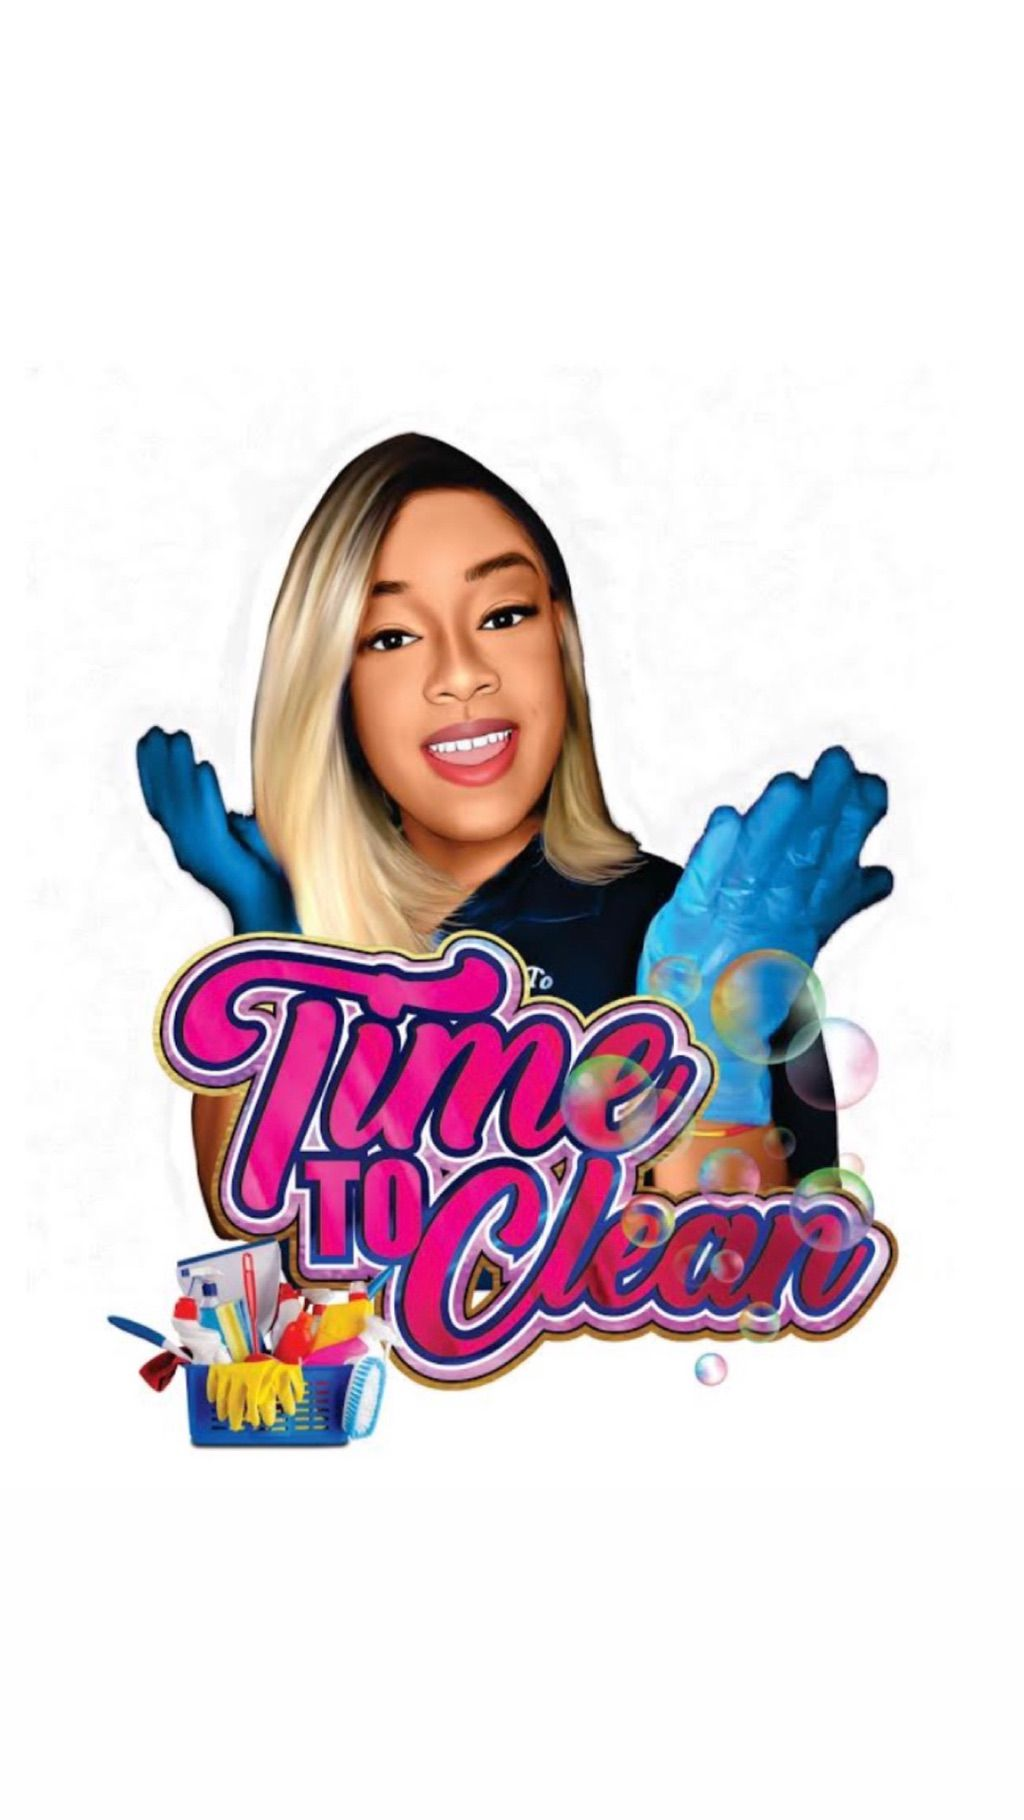 TIME TO CLEAN LLC